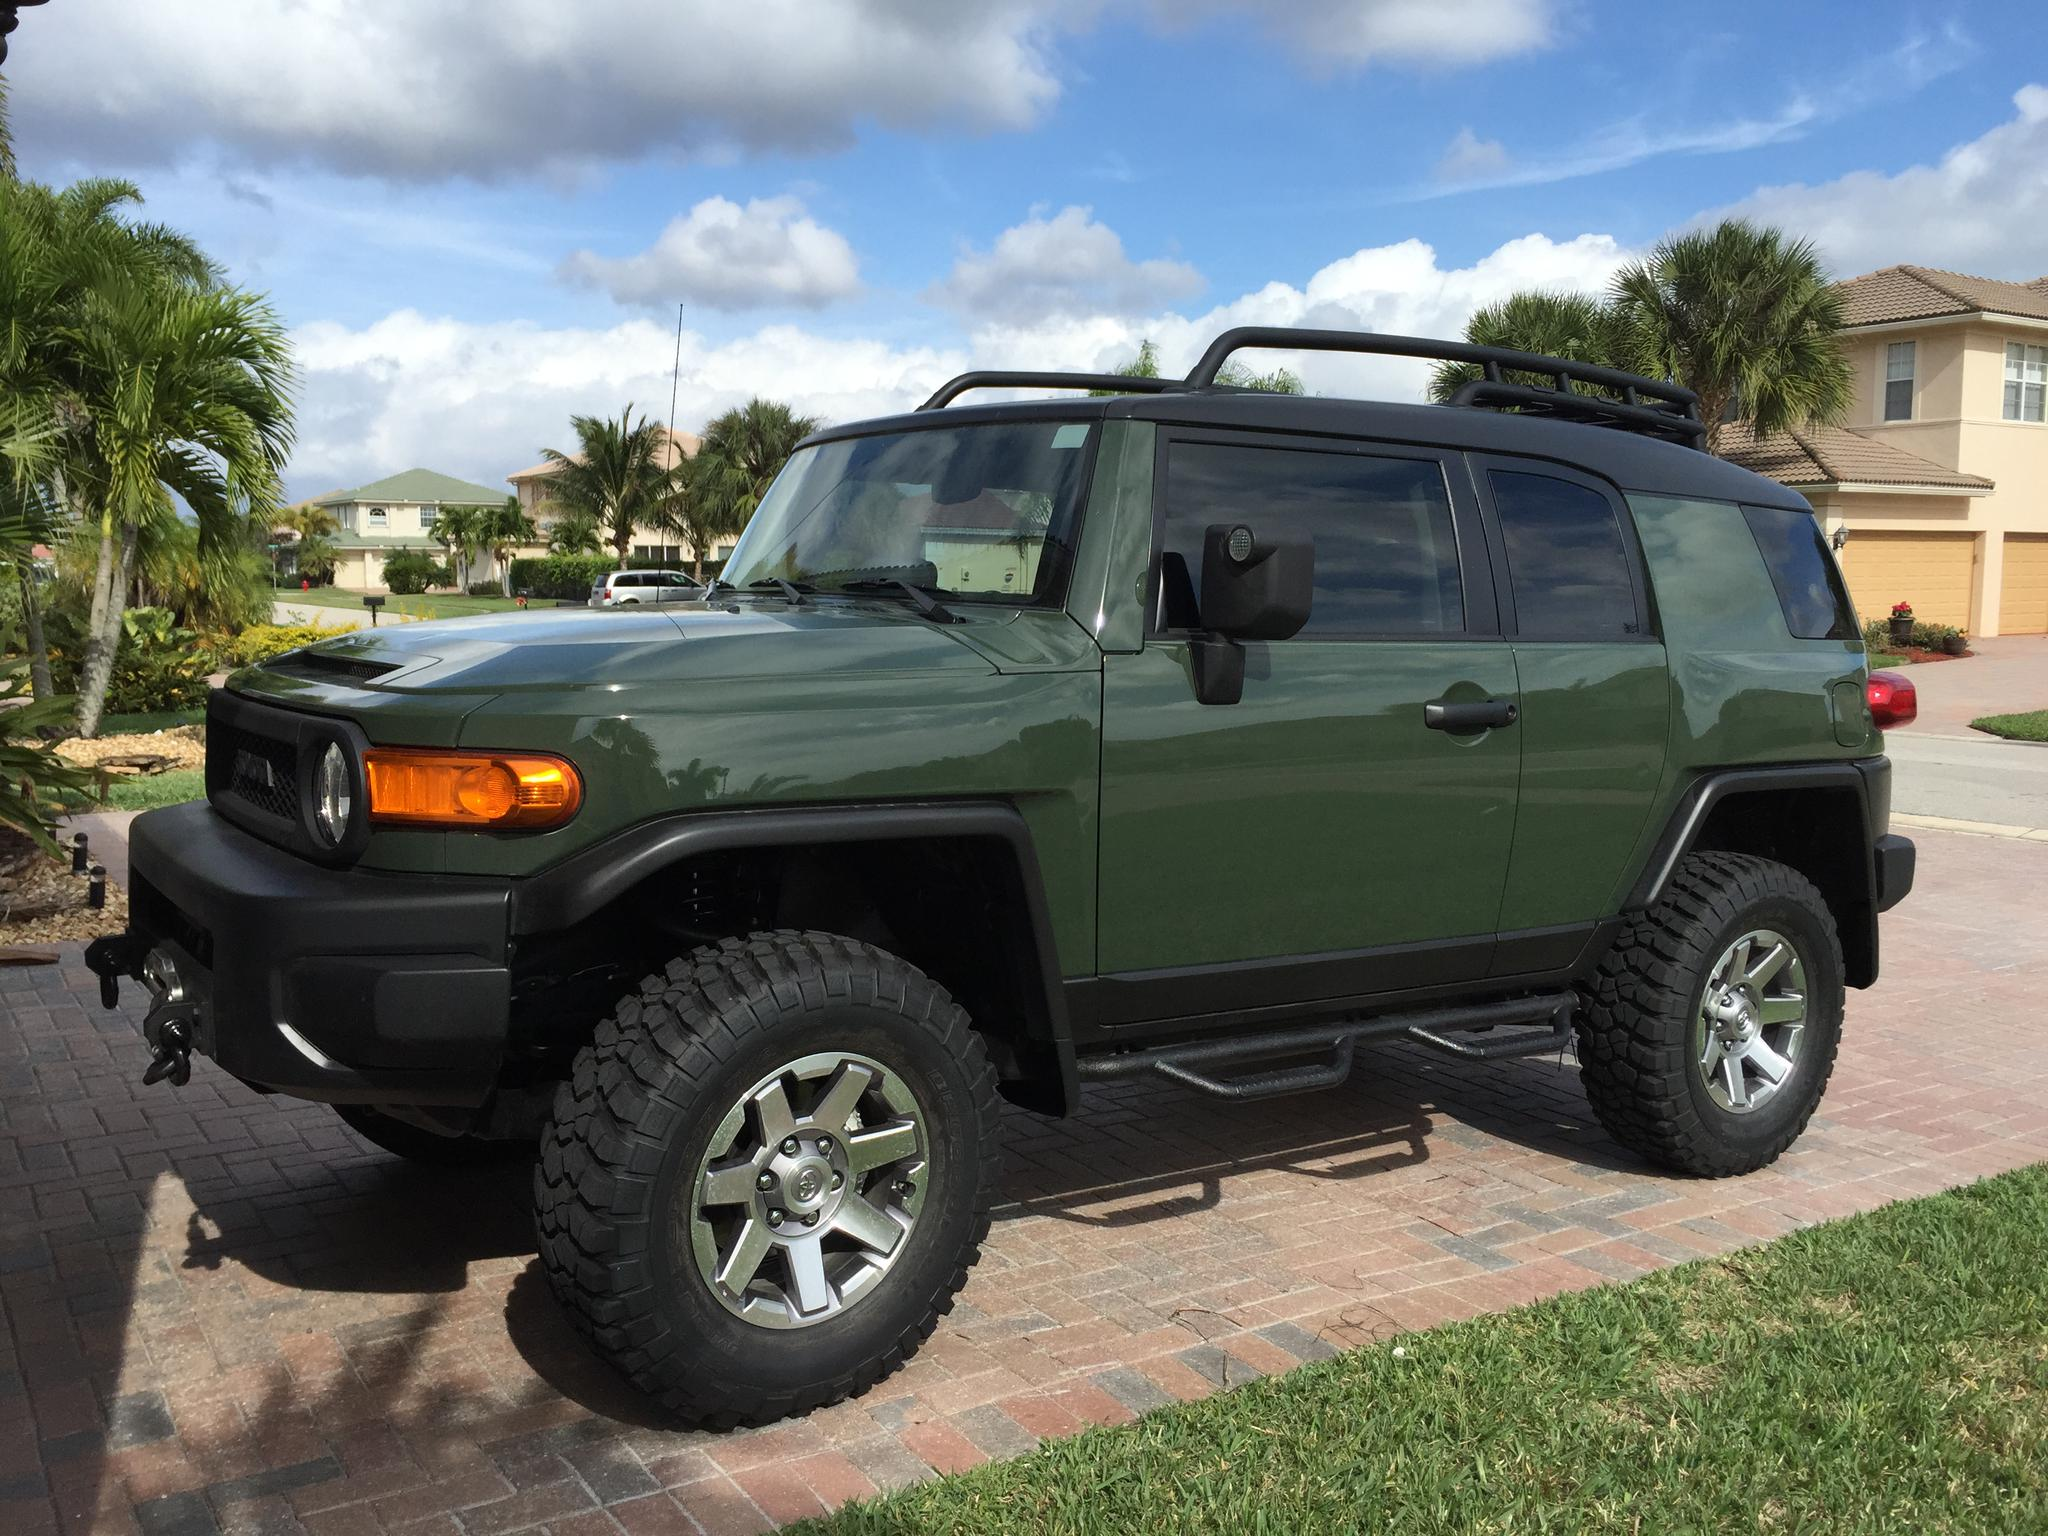 New 2014 Army Green 4wd Fj Toyota Fj Cruiser Forum